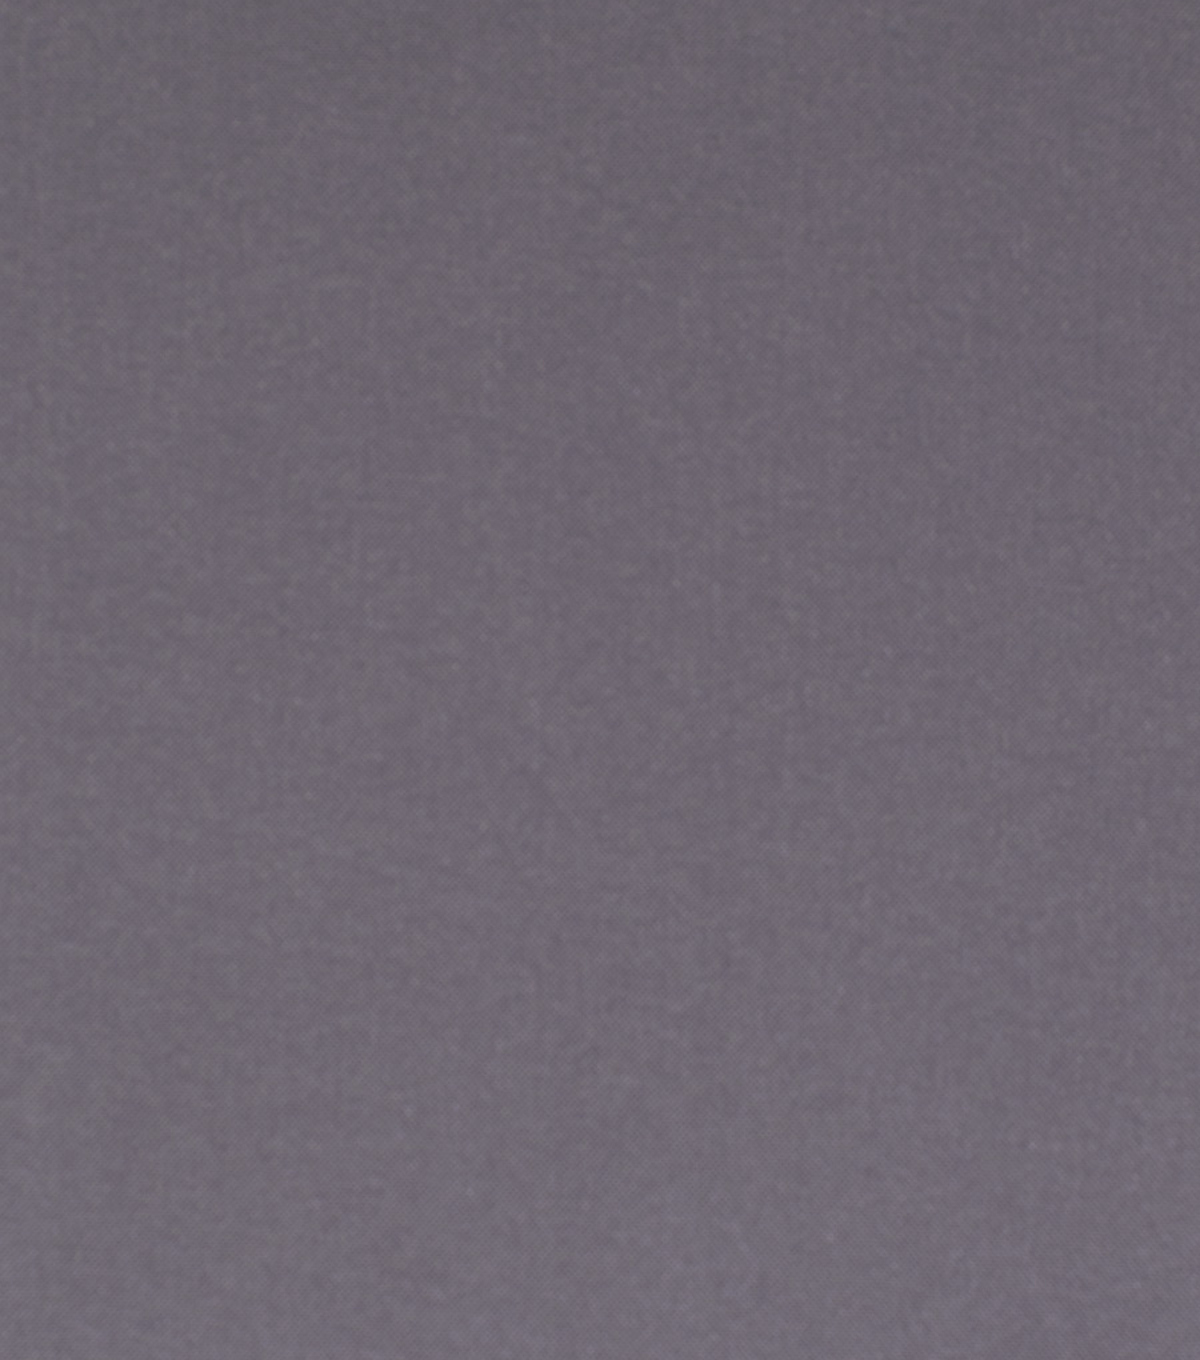 Home Decor 8\u0022x8\u0022 Fabric Swatch-Signature Series Solitaire  Lt. Charcoal